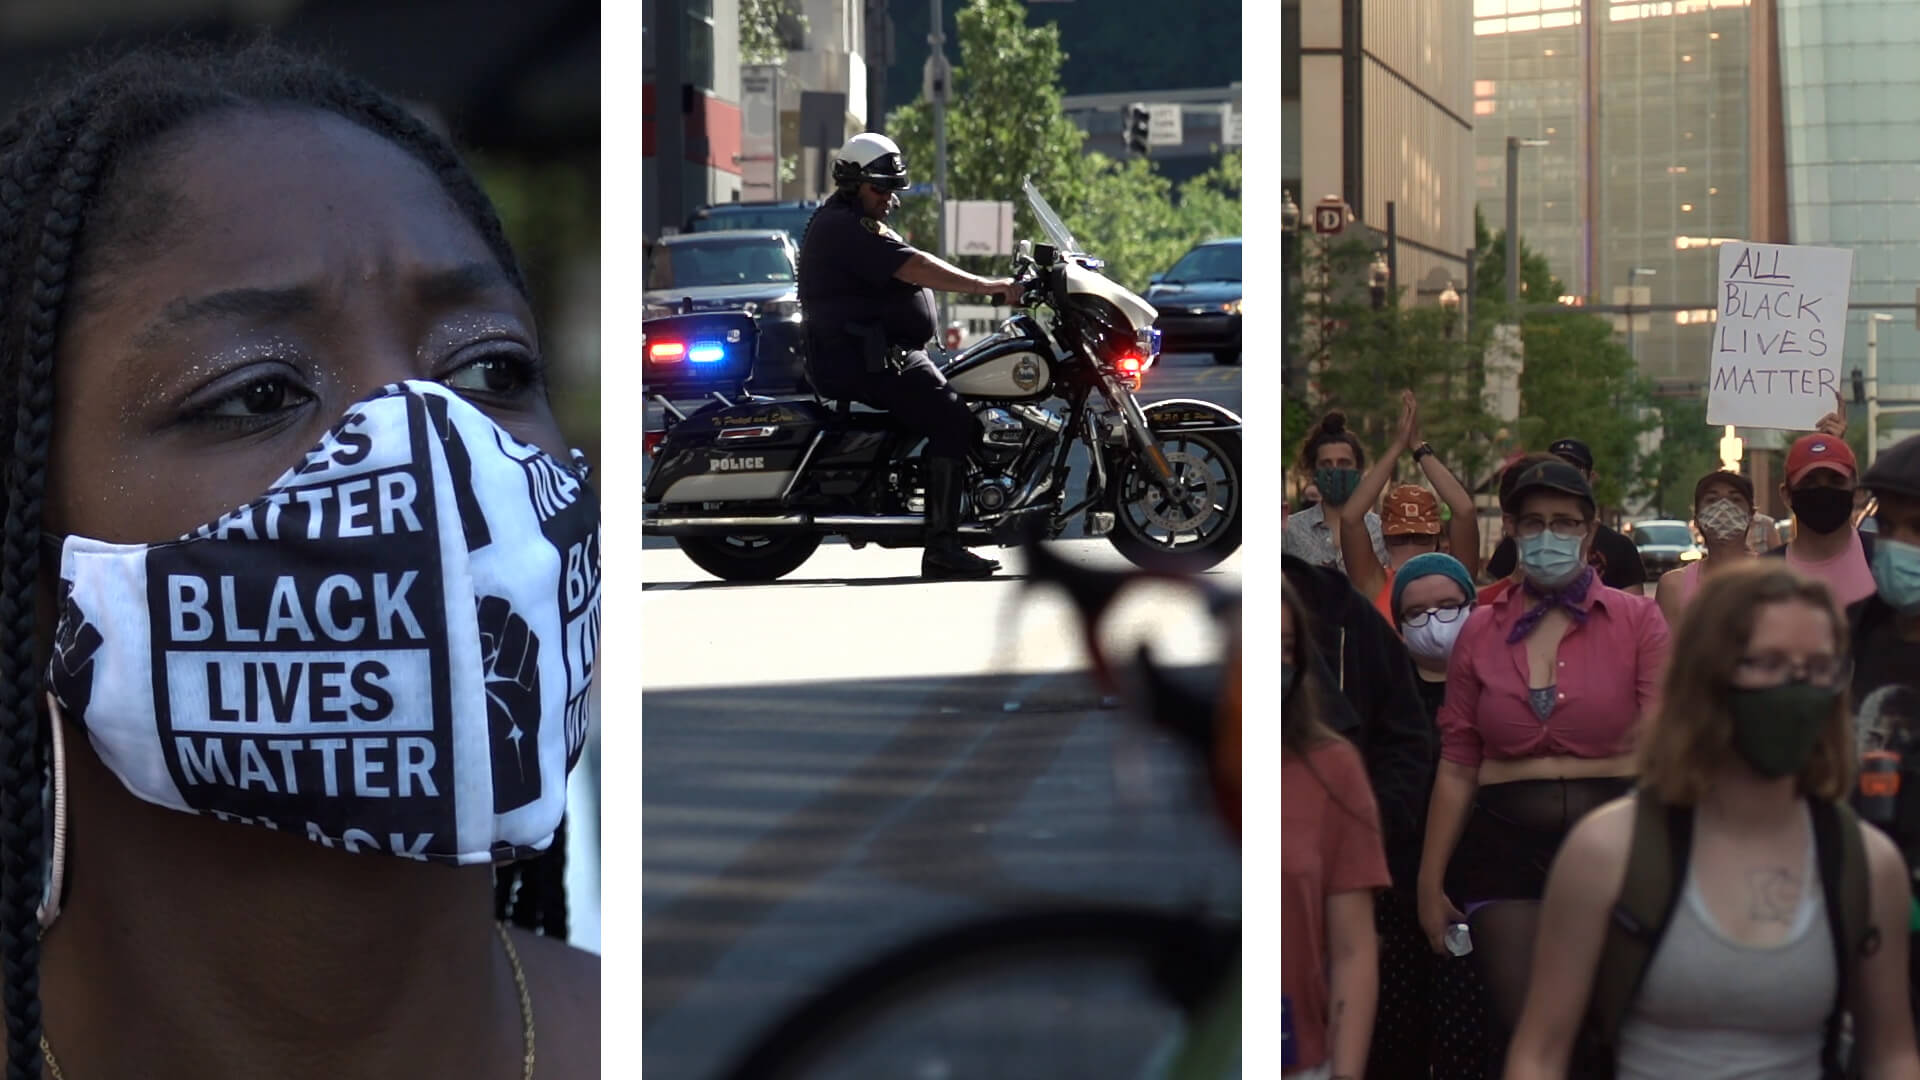 From left: A woman in a Black Lives Matter mask. A police officer on a motorcycle. Protesters walk down a Pittsburgh street.